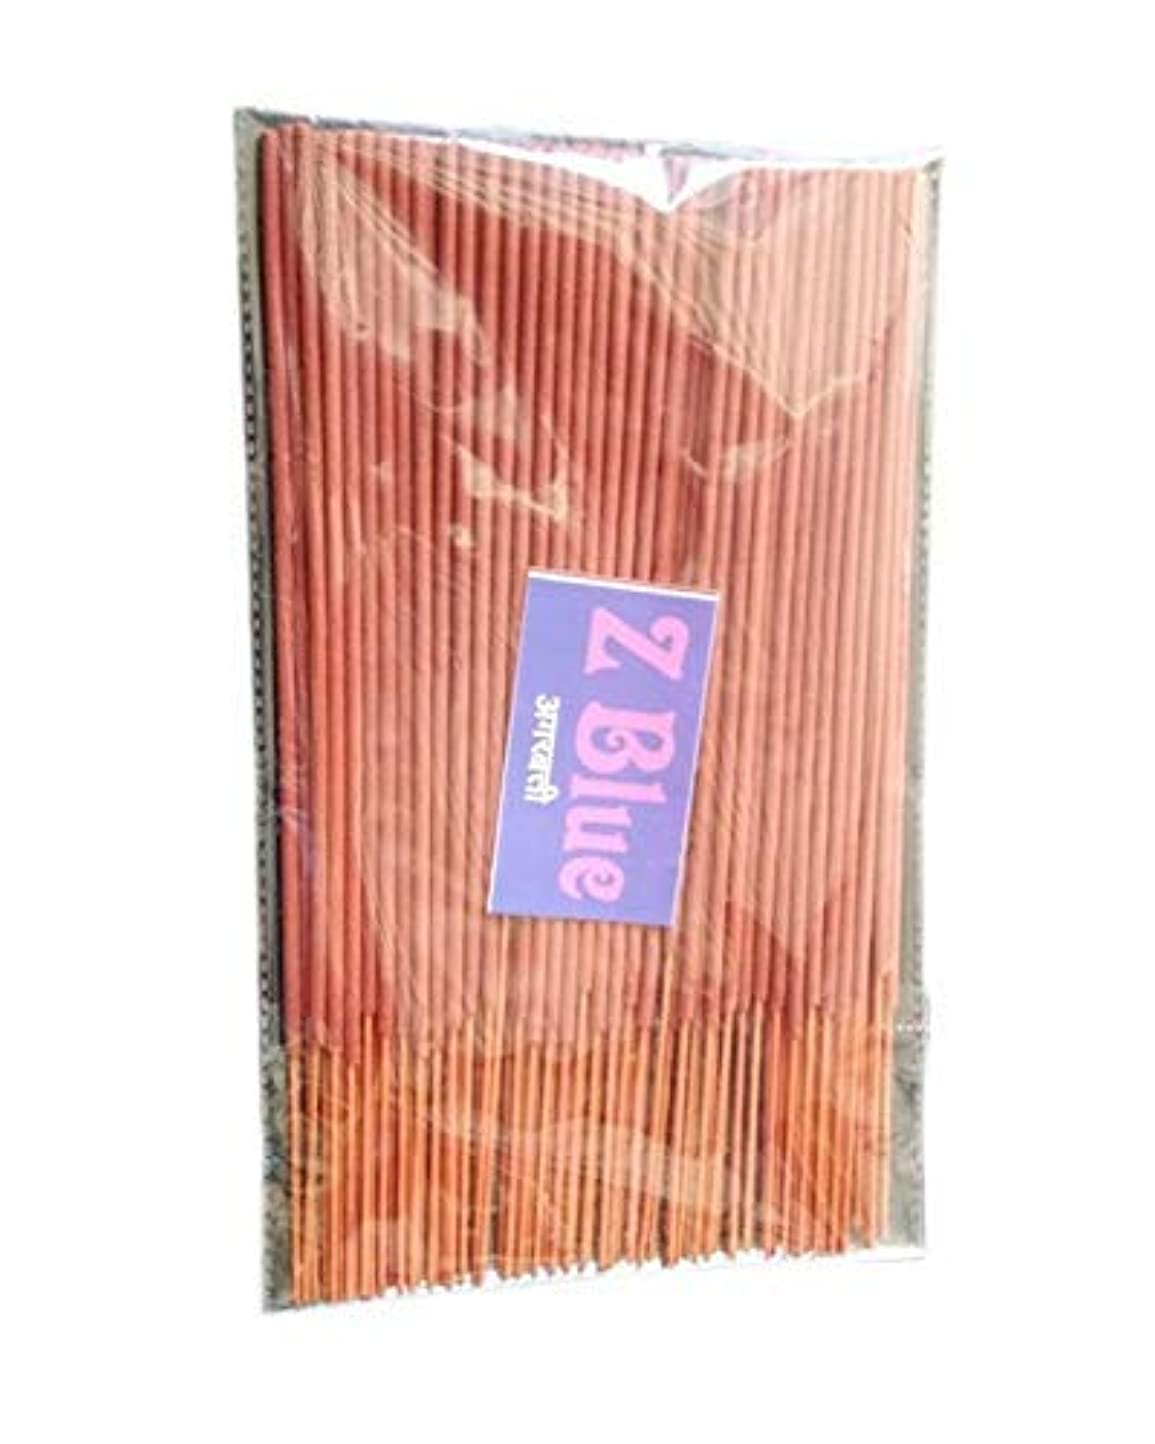 同盟ブレスライナーDarshan Z Blue Incense Sticks/Agarbatti (200 GM Pack)